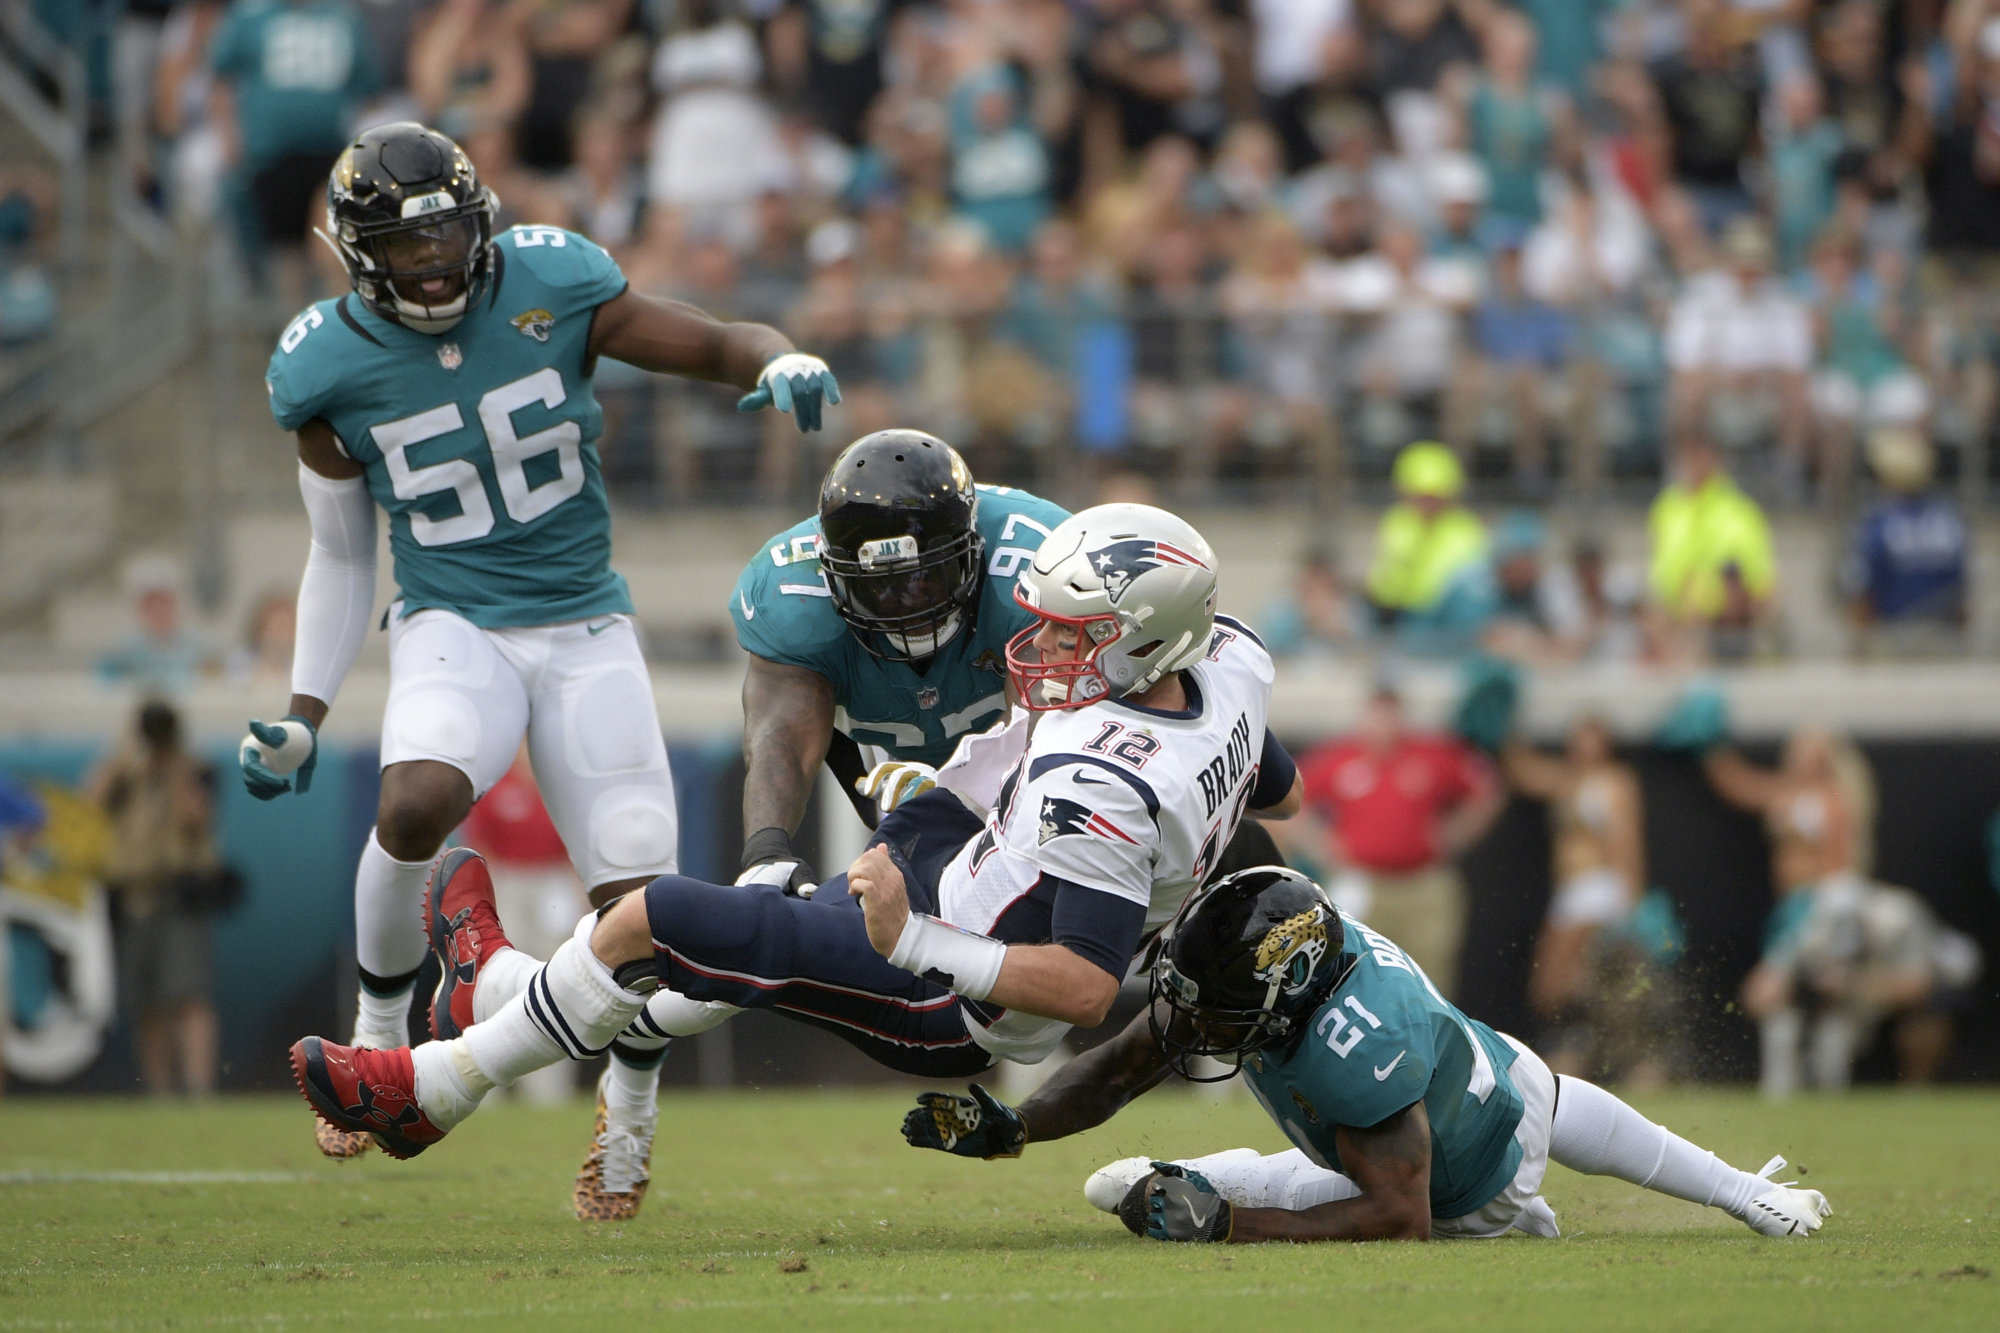 New England Patriots quarterback Tom Brady (12) is tackled after scrambling for yardage by Jacksonville Jaguars defensive tackle Malik Jackson (97) and defensive back A.J. Bouye (21), as defensive end Dante Fowler (56) trails the play, during the second half of an NFL football game Sunday, Sept. 16, 2018, in Jacksonville, Fla. The Jaguars won 31-20. (AP Photo/Phelan M. Ebenhack)